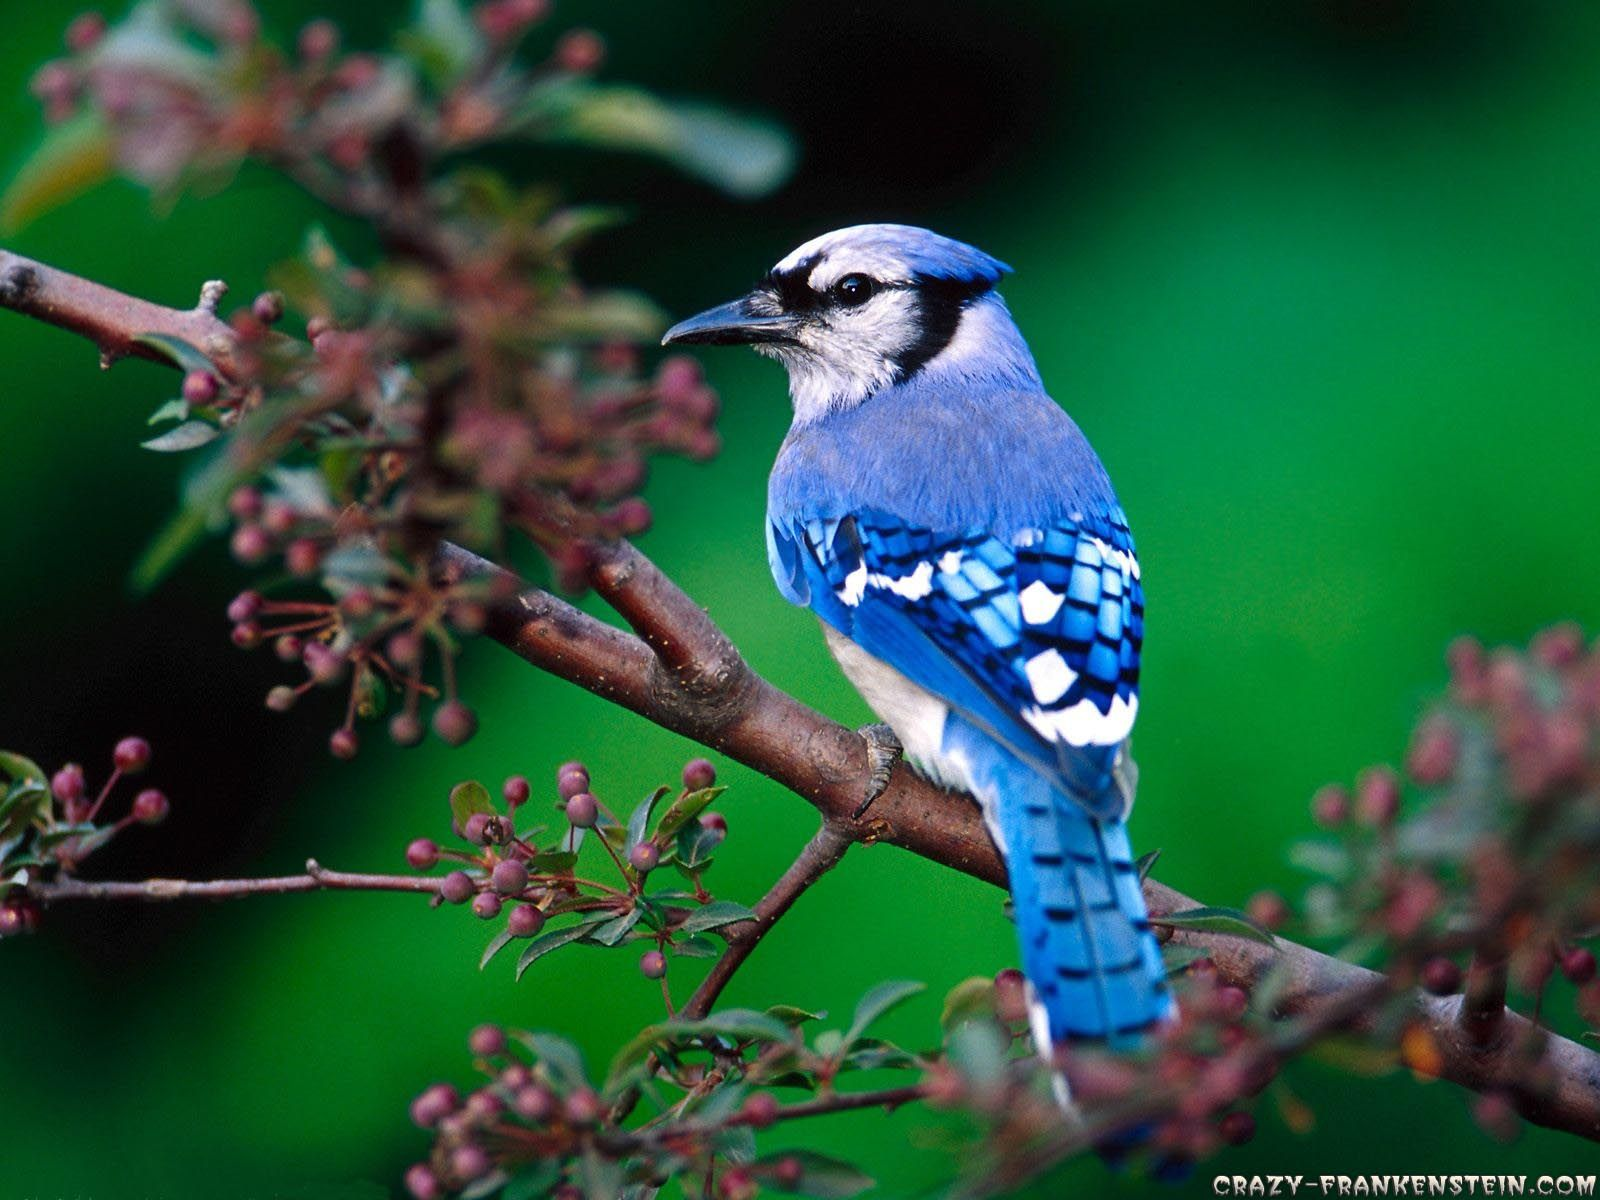 xpx Bird Wallpaper images for free